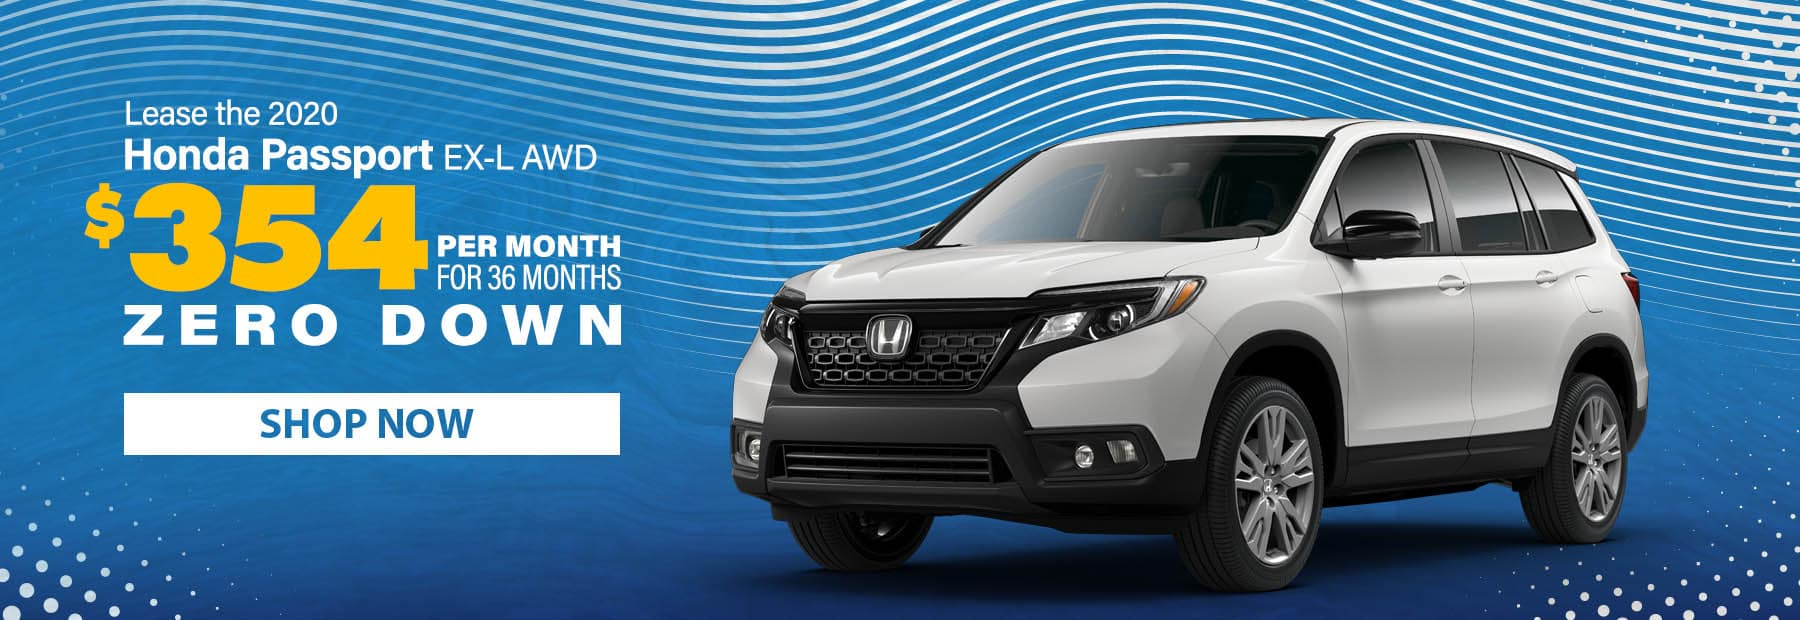 Lease a 2020 Honda Passport EX-L AWD SUV for $354/mo. for 36 months with $0 down!